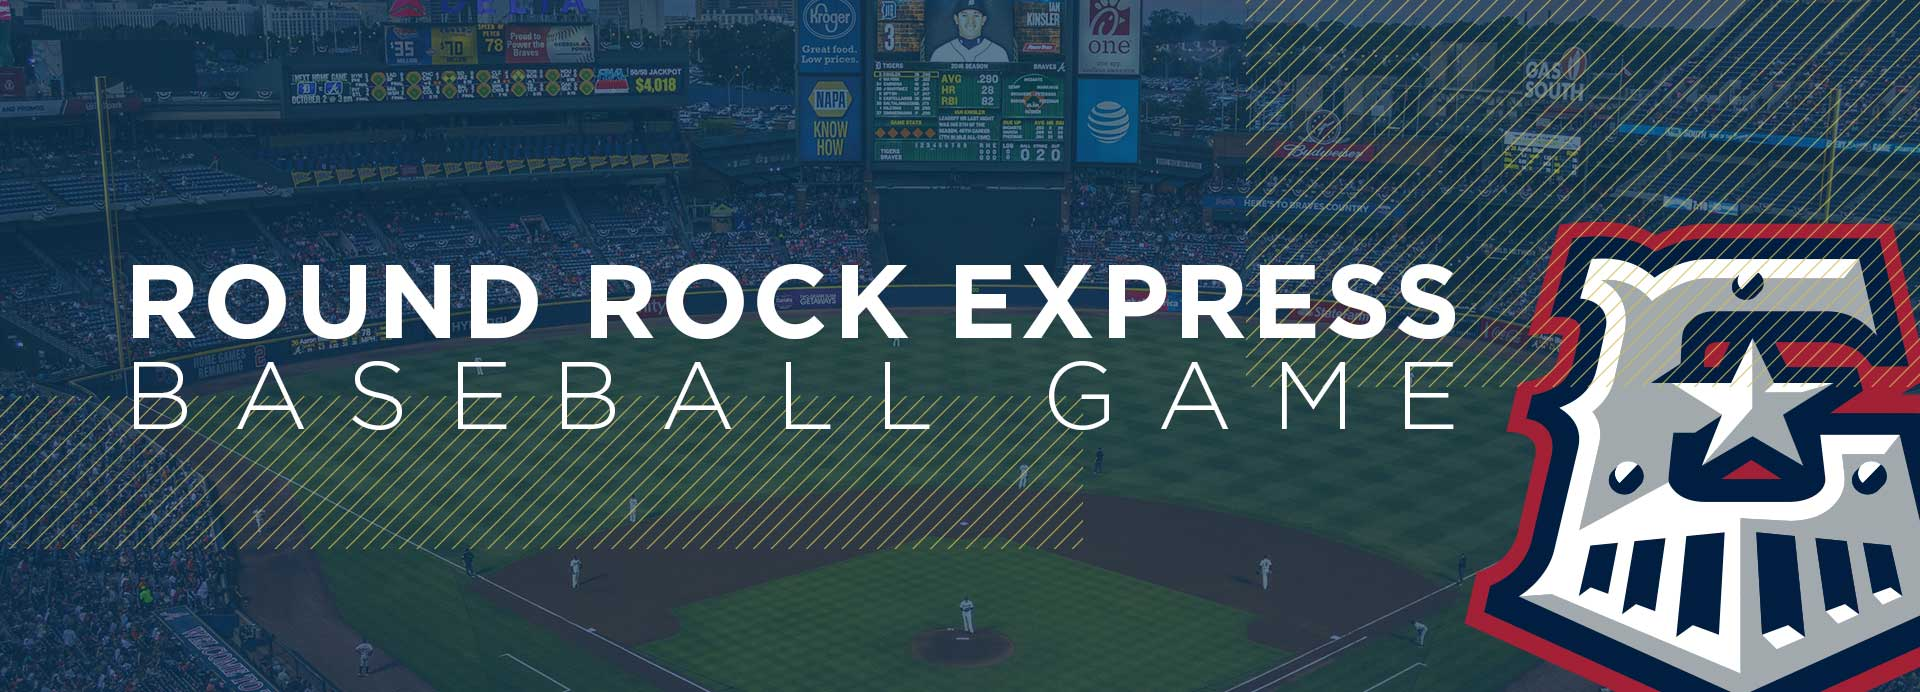 RR-Express-Baseball-Game_1920x692.jpg